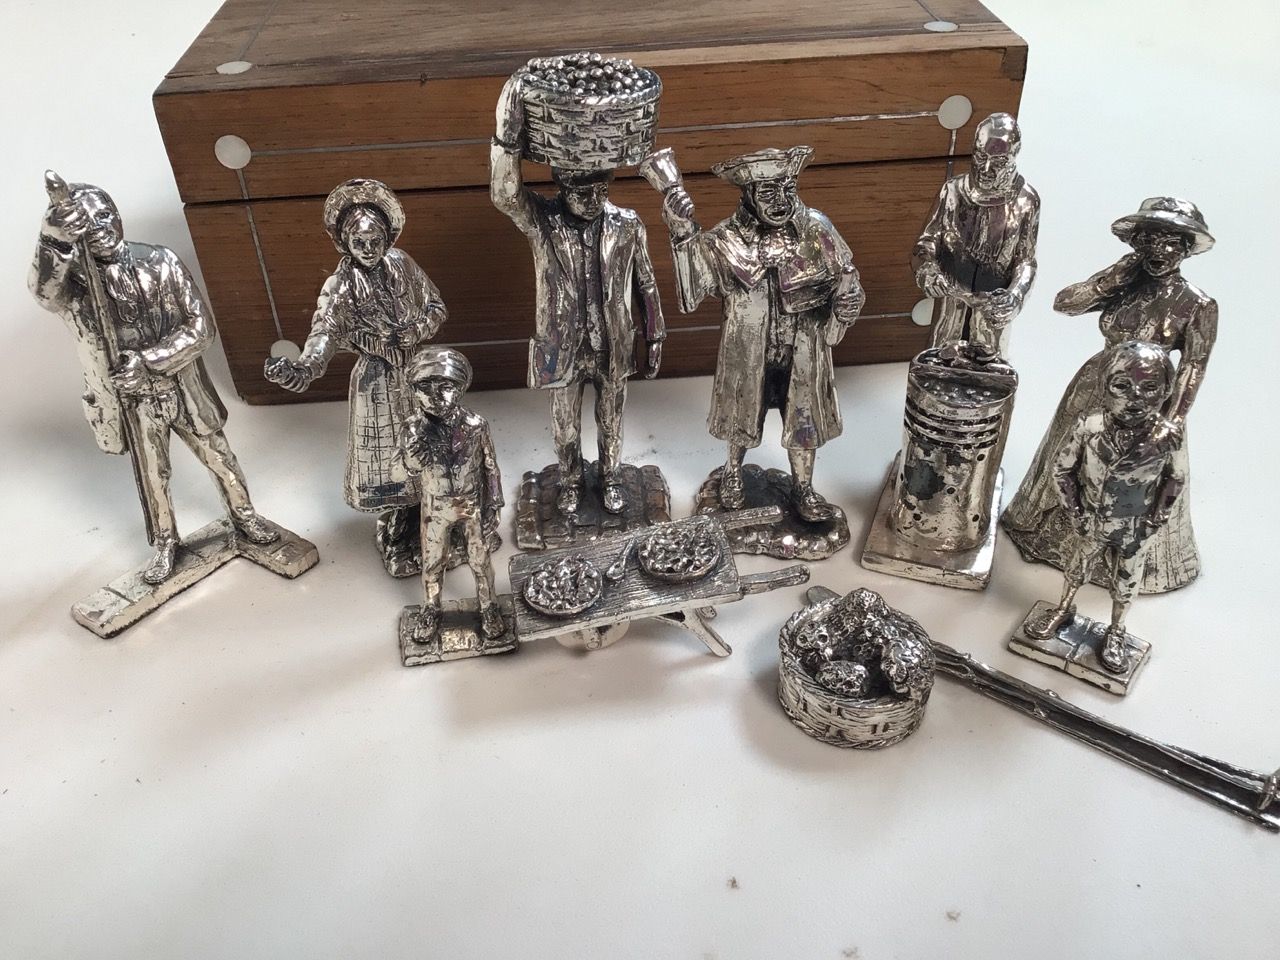 Eleven silvered figures and a wooden box with mother of pearl inlay. - Image 3 of 4